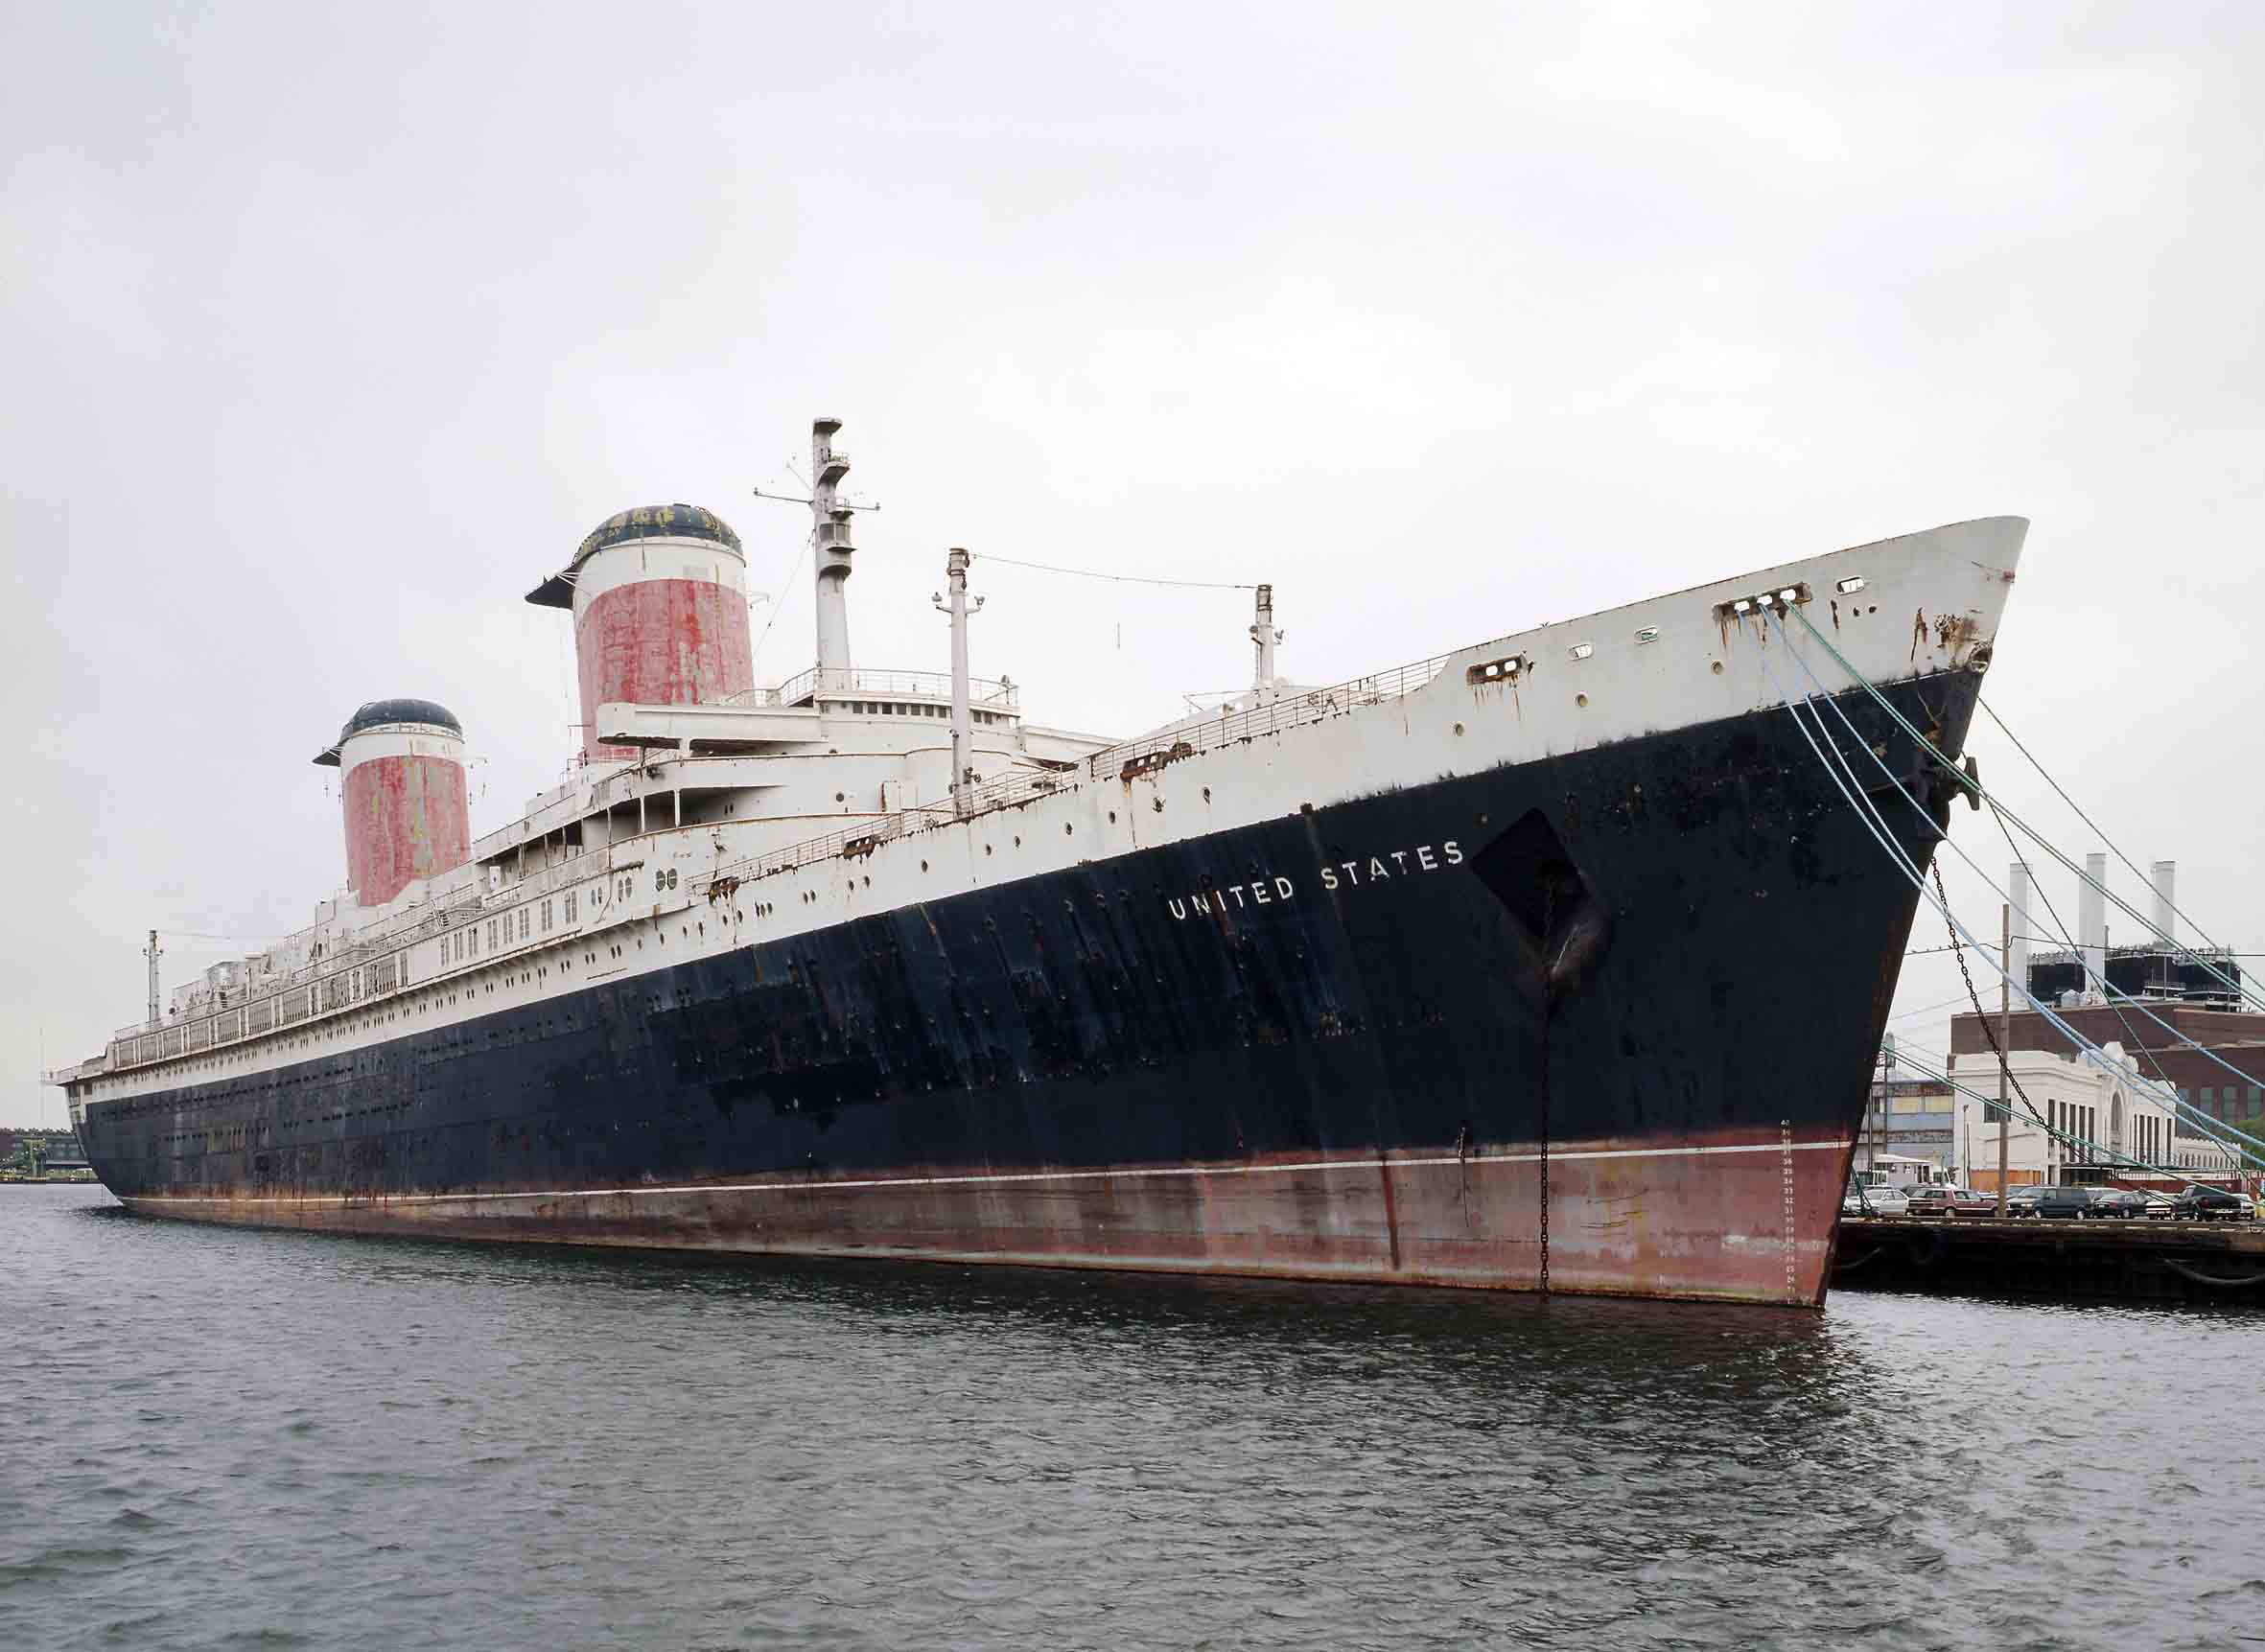 Crystal Cruises Announces Plans To Restore Ss United